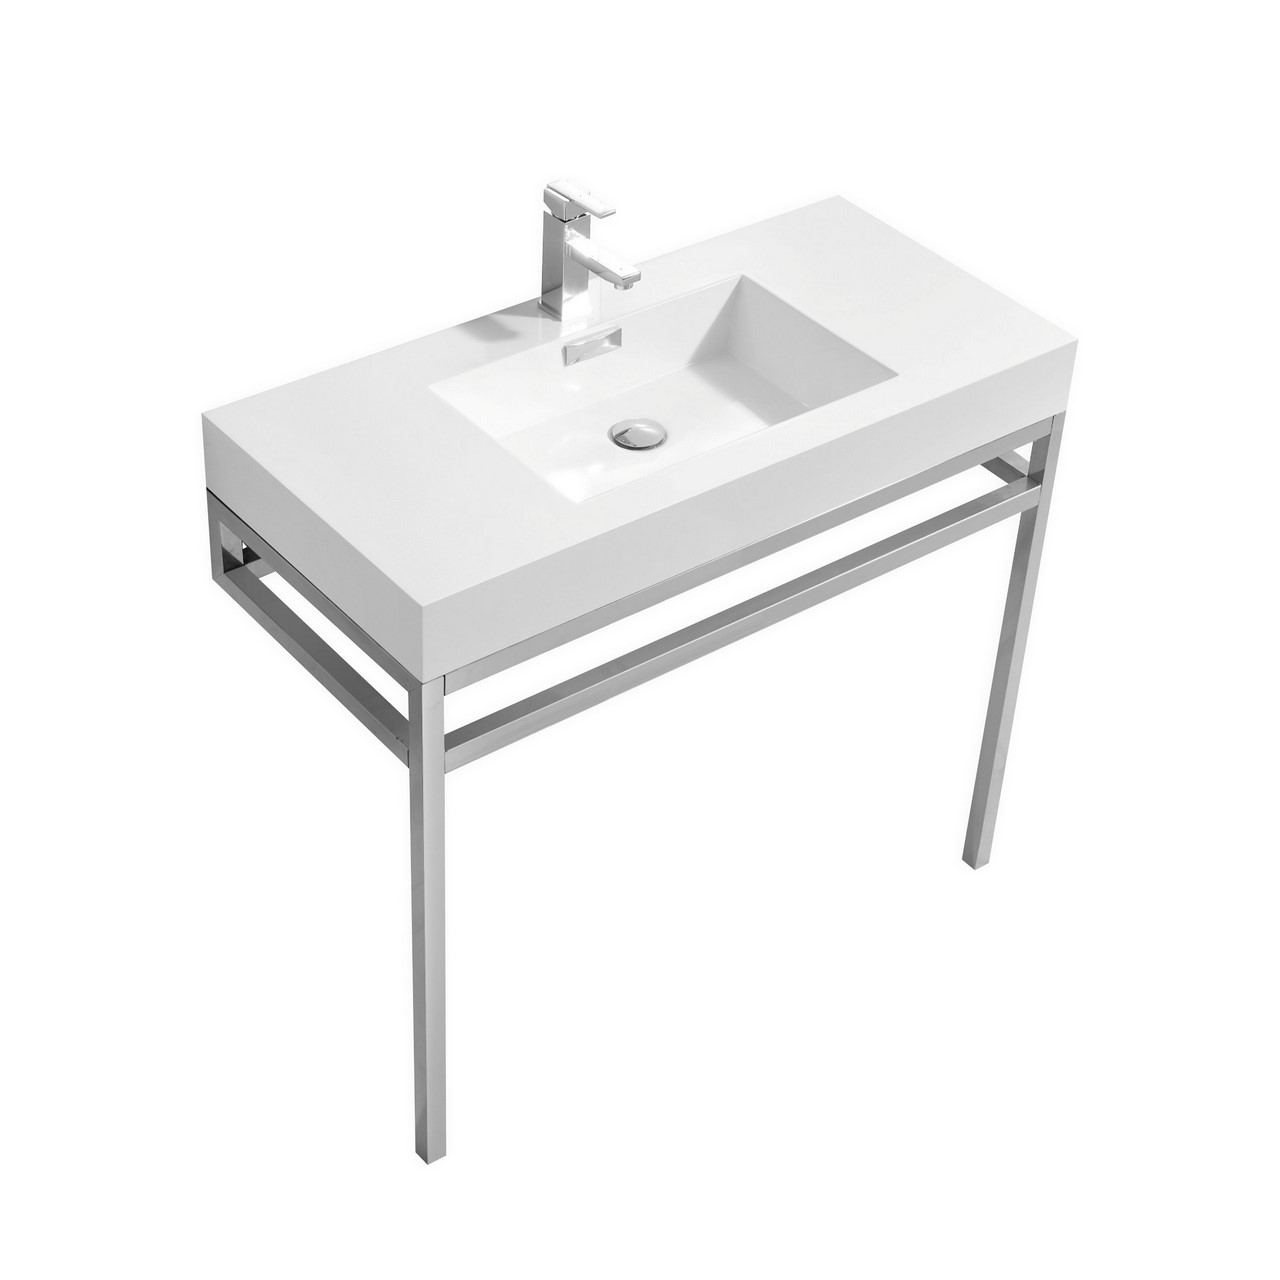 "Modern Lux 36"" Stainless Steel Console w/ White Acrylic Sink - Chrome"